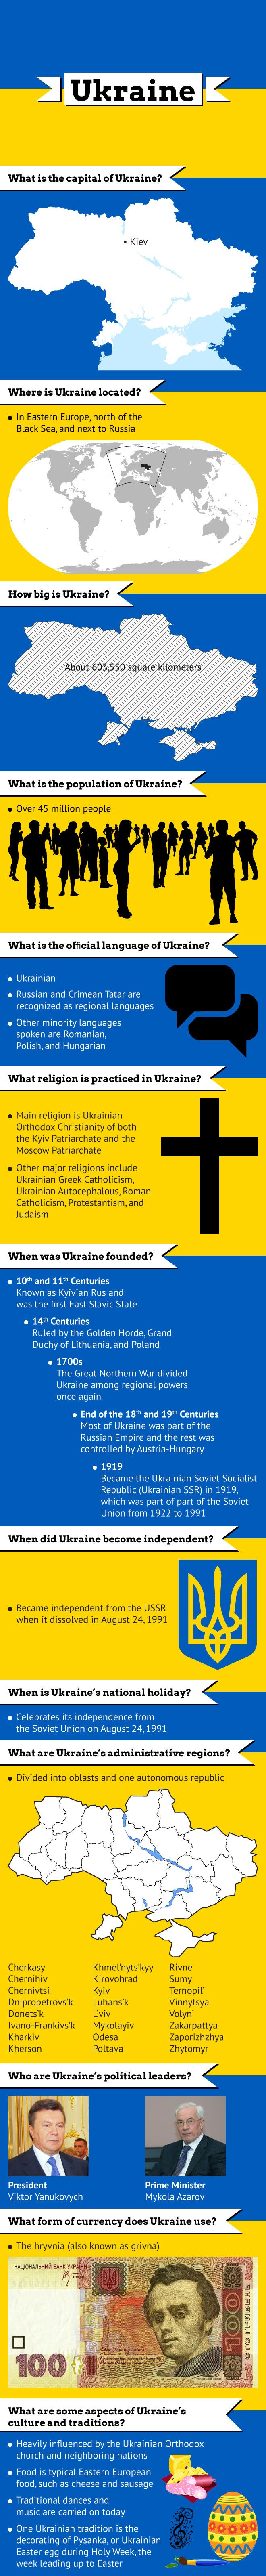 Infographic of Ukraine Facts